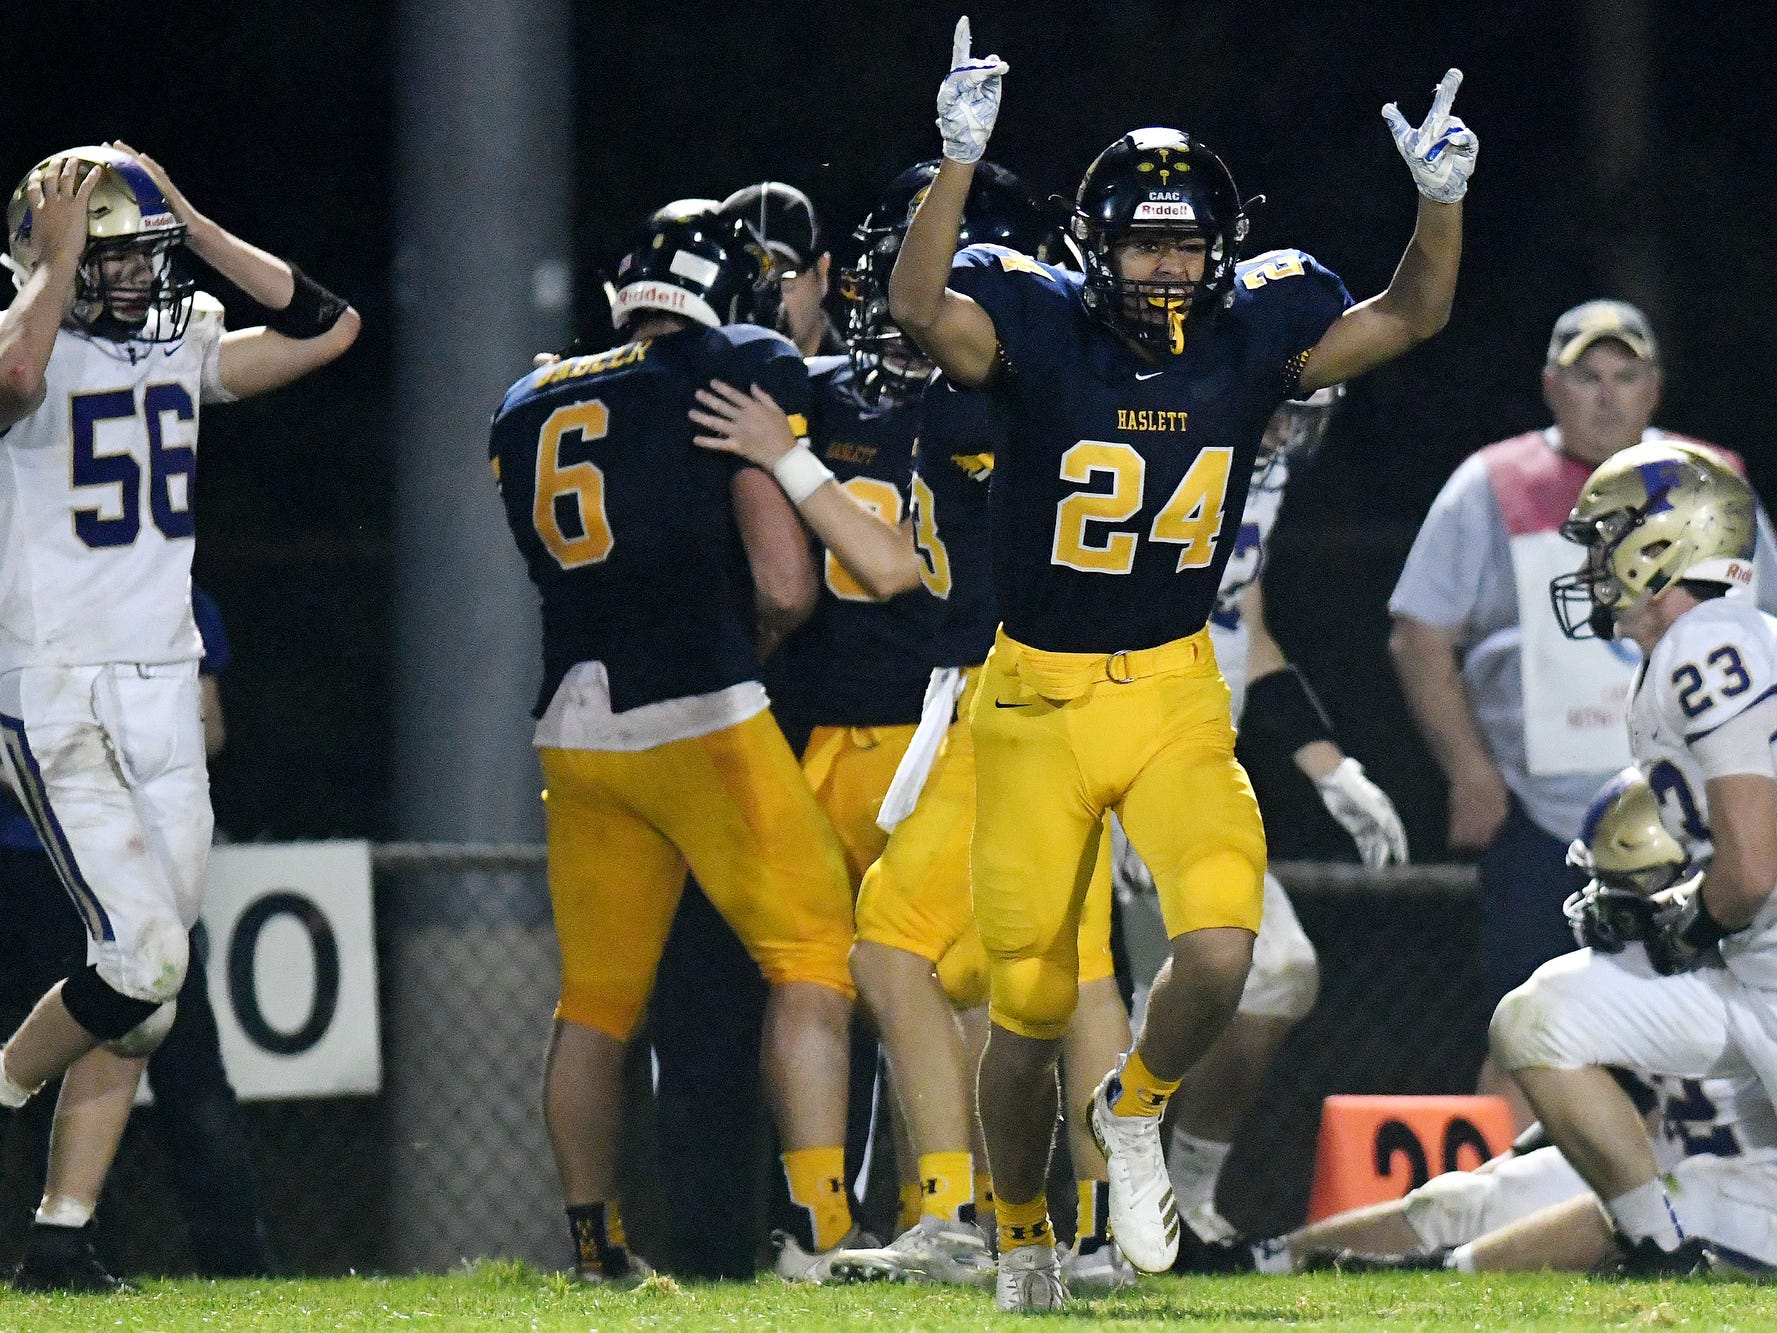 Haslett's Ty Andrades celebrates after the Vikings recovered a Fowlerville fumble during the fourth quarter on Friday, Sept. 14, 2018, at Haslett High School.